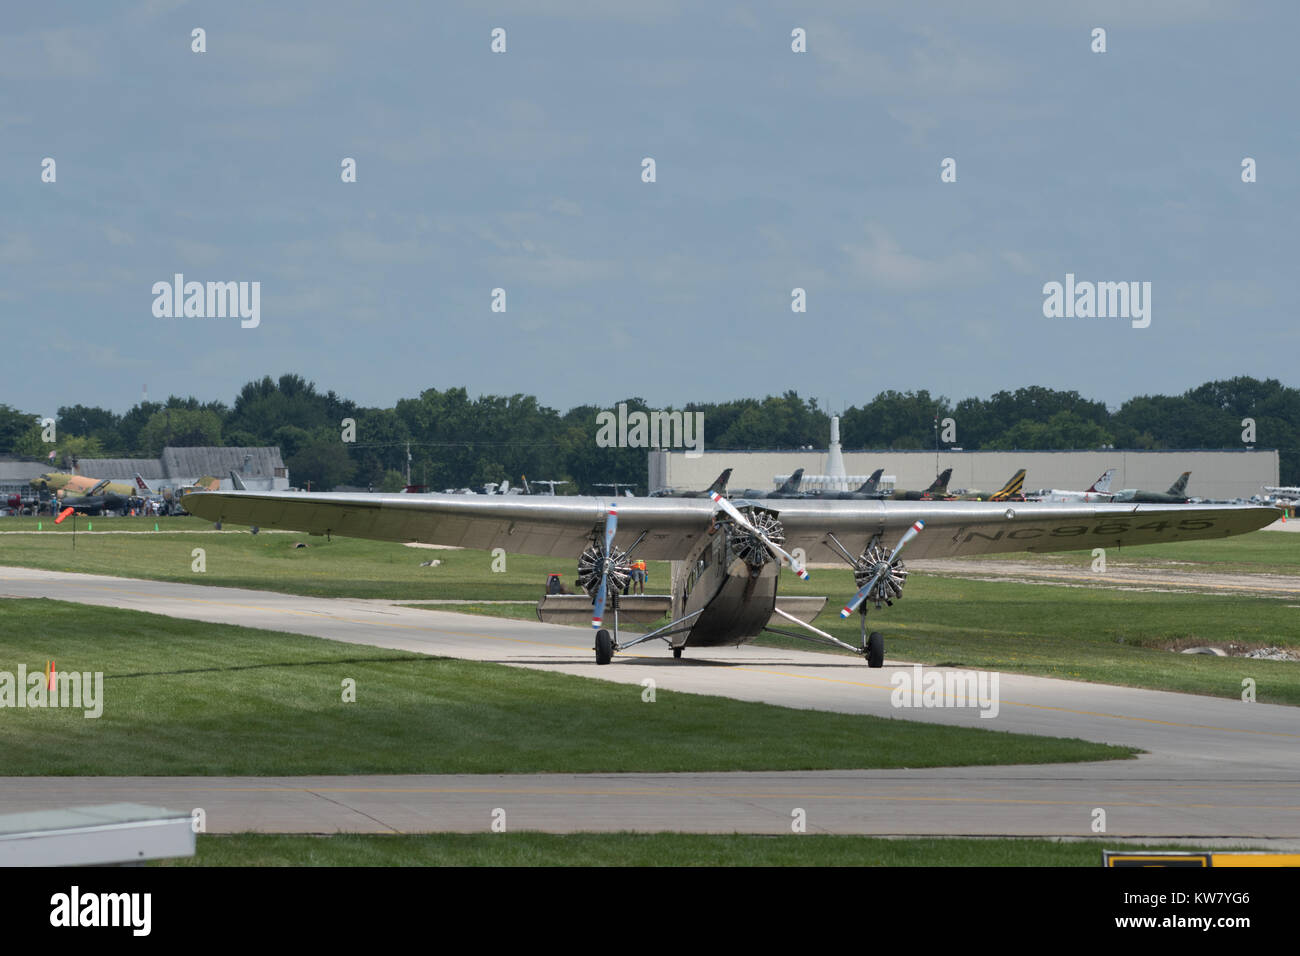 Oshkosh, WI - 24 July 2017:  A Vintage Transcontinental Air Transport Ford model 5-AT-B trimotor aircraft - Stock Image